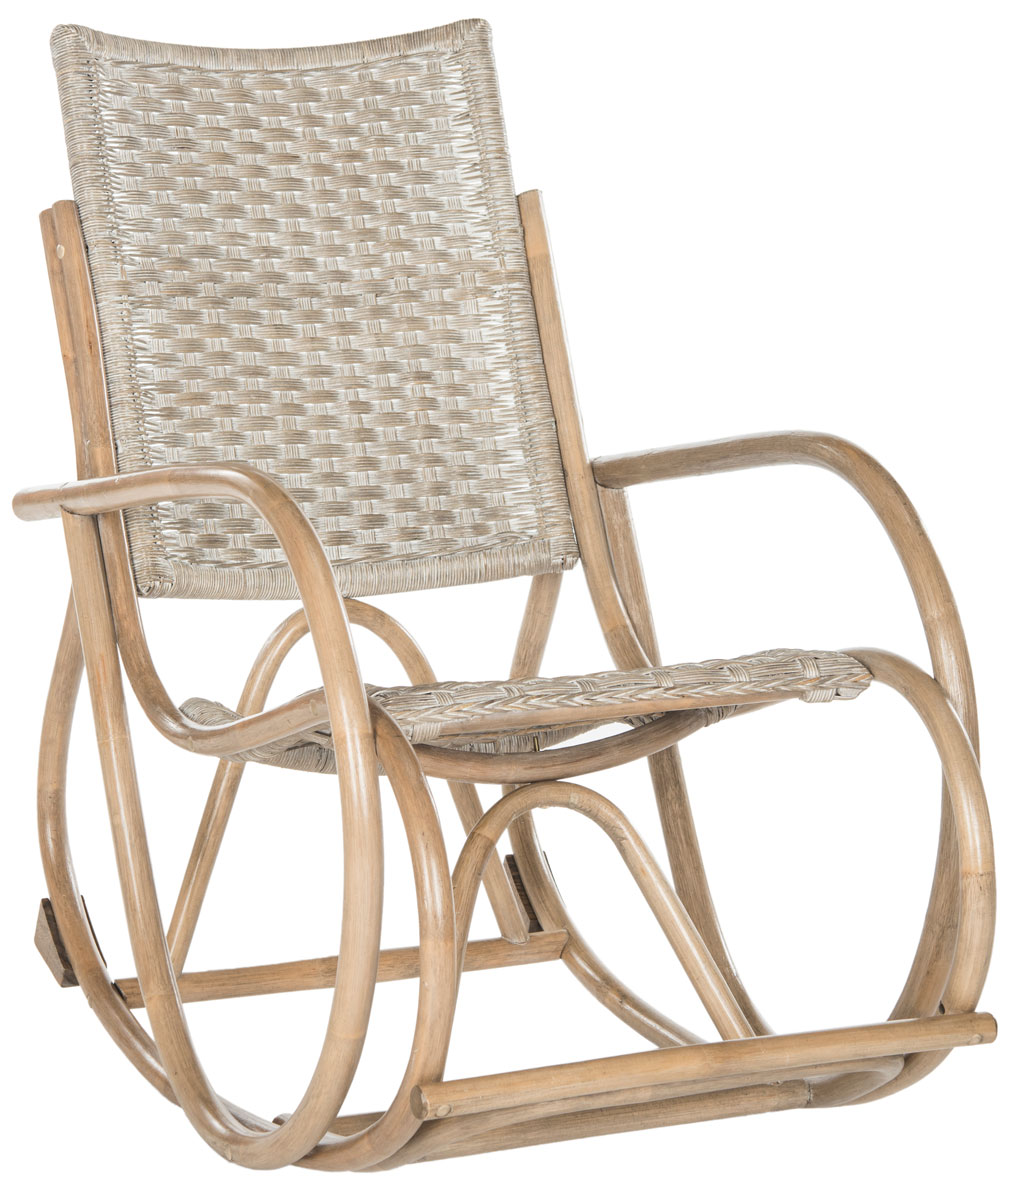 sc 1 st  Safavieh.com & SEA8035A Rocking Chairs - Furniture by Safavieh